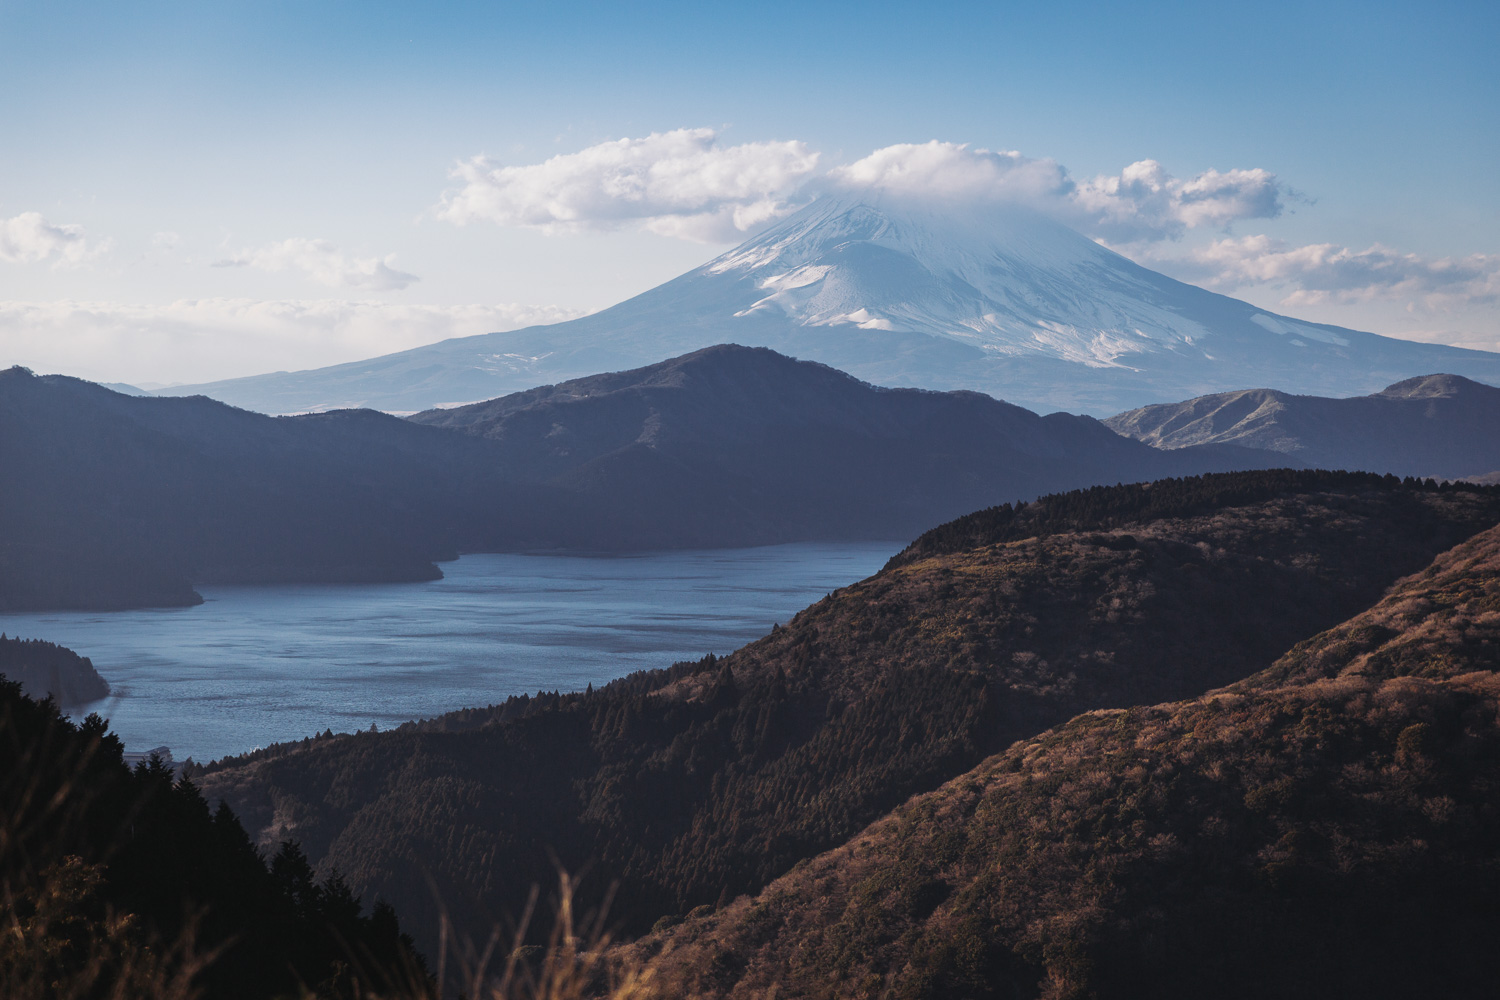 Mount Fuji and surrounding mountains in the late-day January sun over Lake Ashi, Hakone, Japan